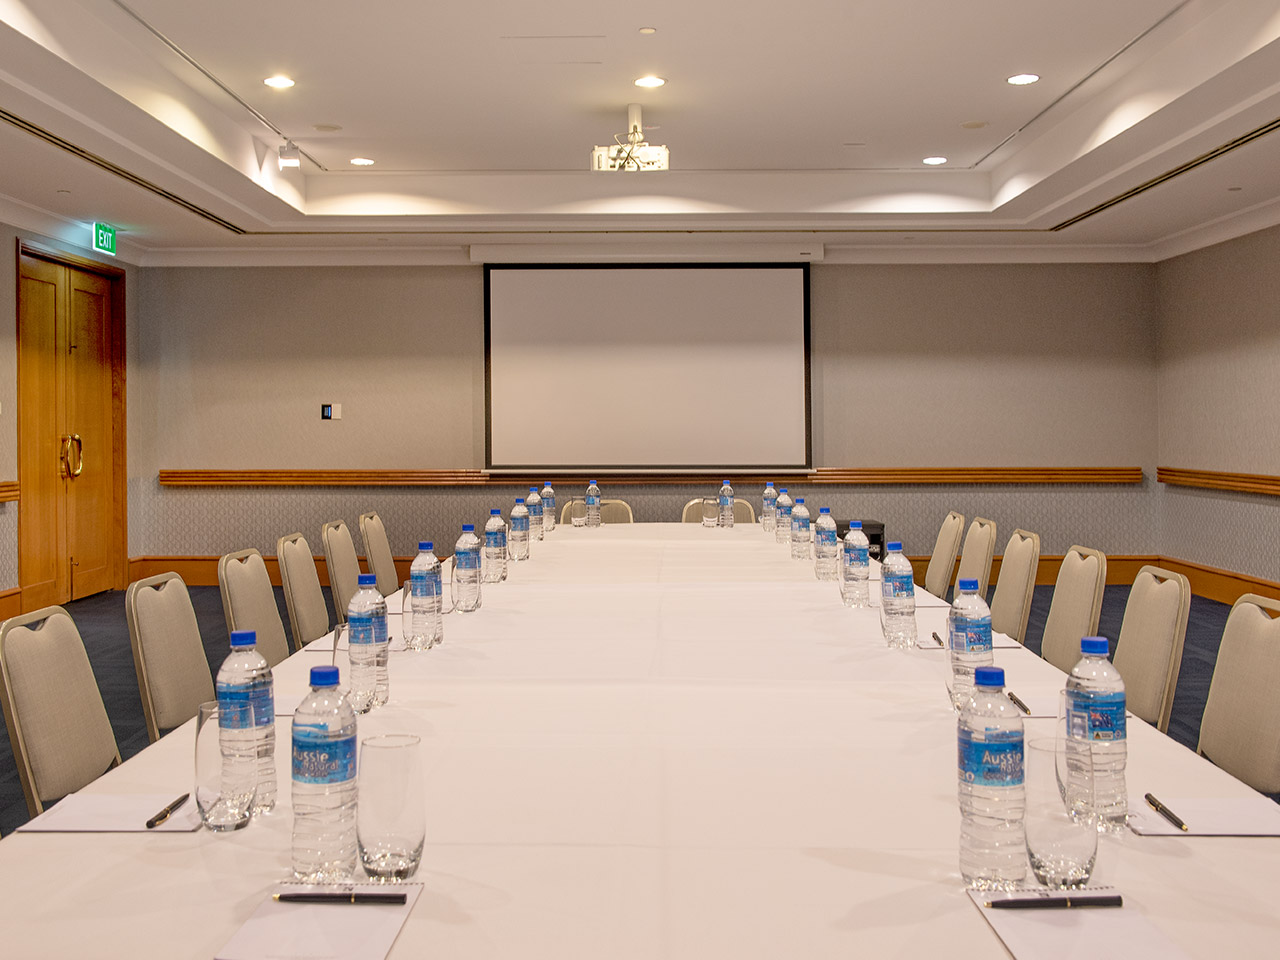 Chairs And A Long Table With Bottled Water And A Projection Screen Inside The Function Room